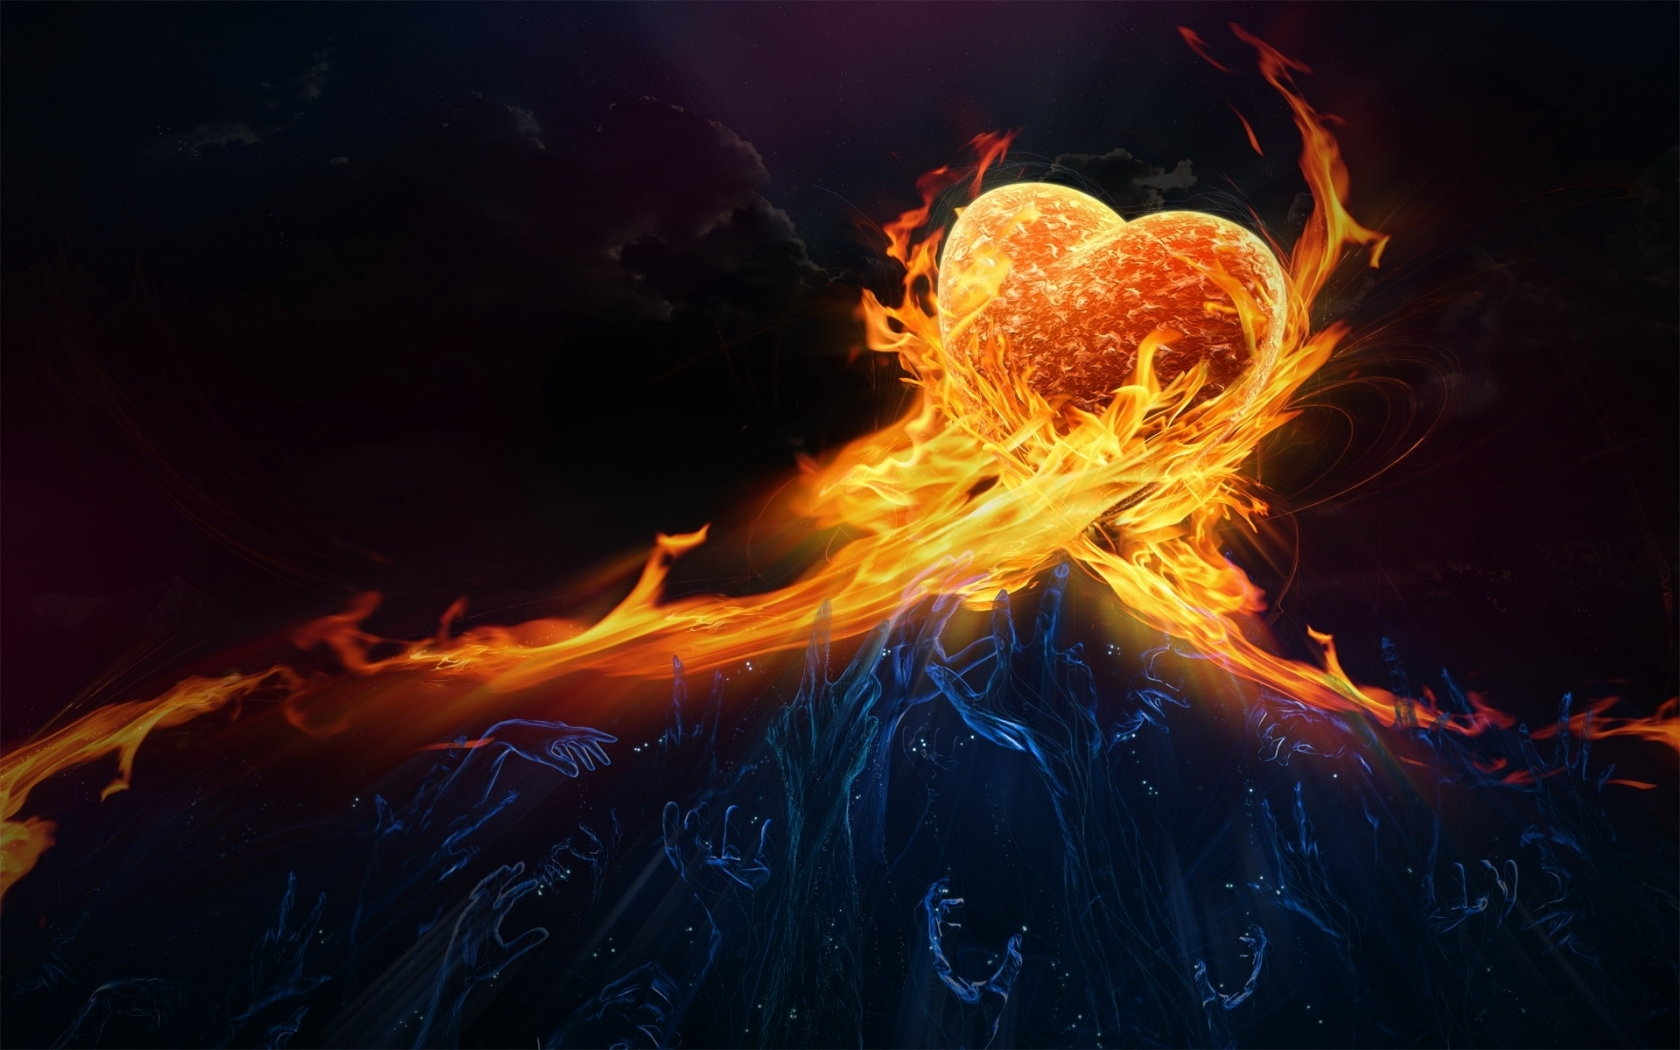 Heart in Fire for 1680 x 1050 widescreen resolution